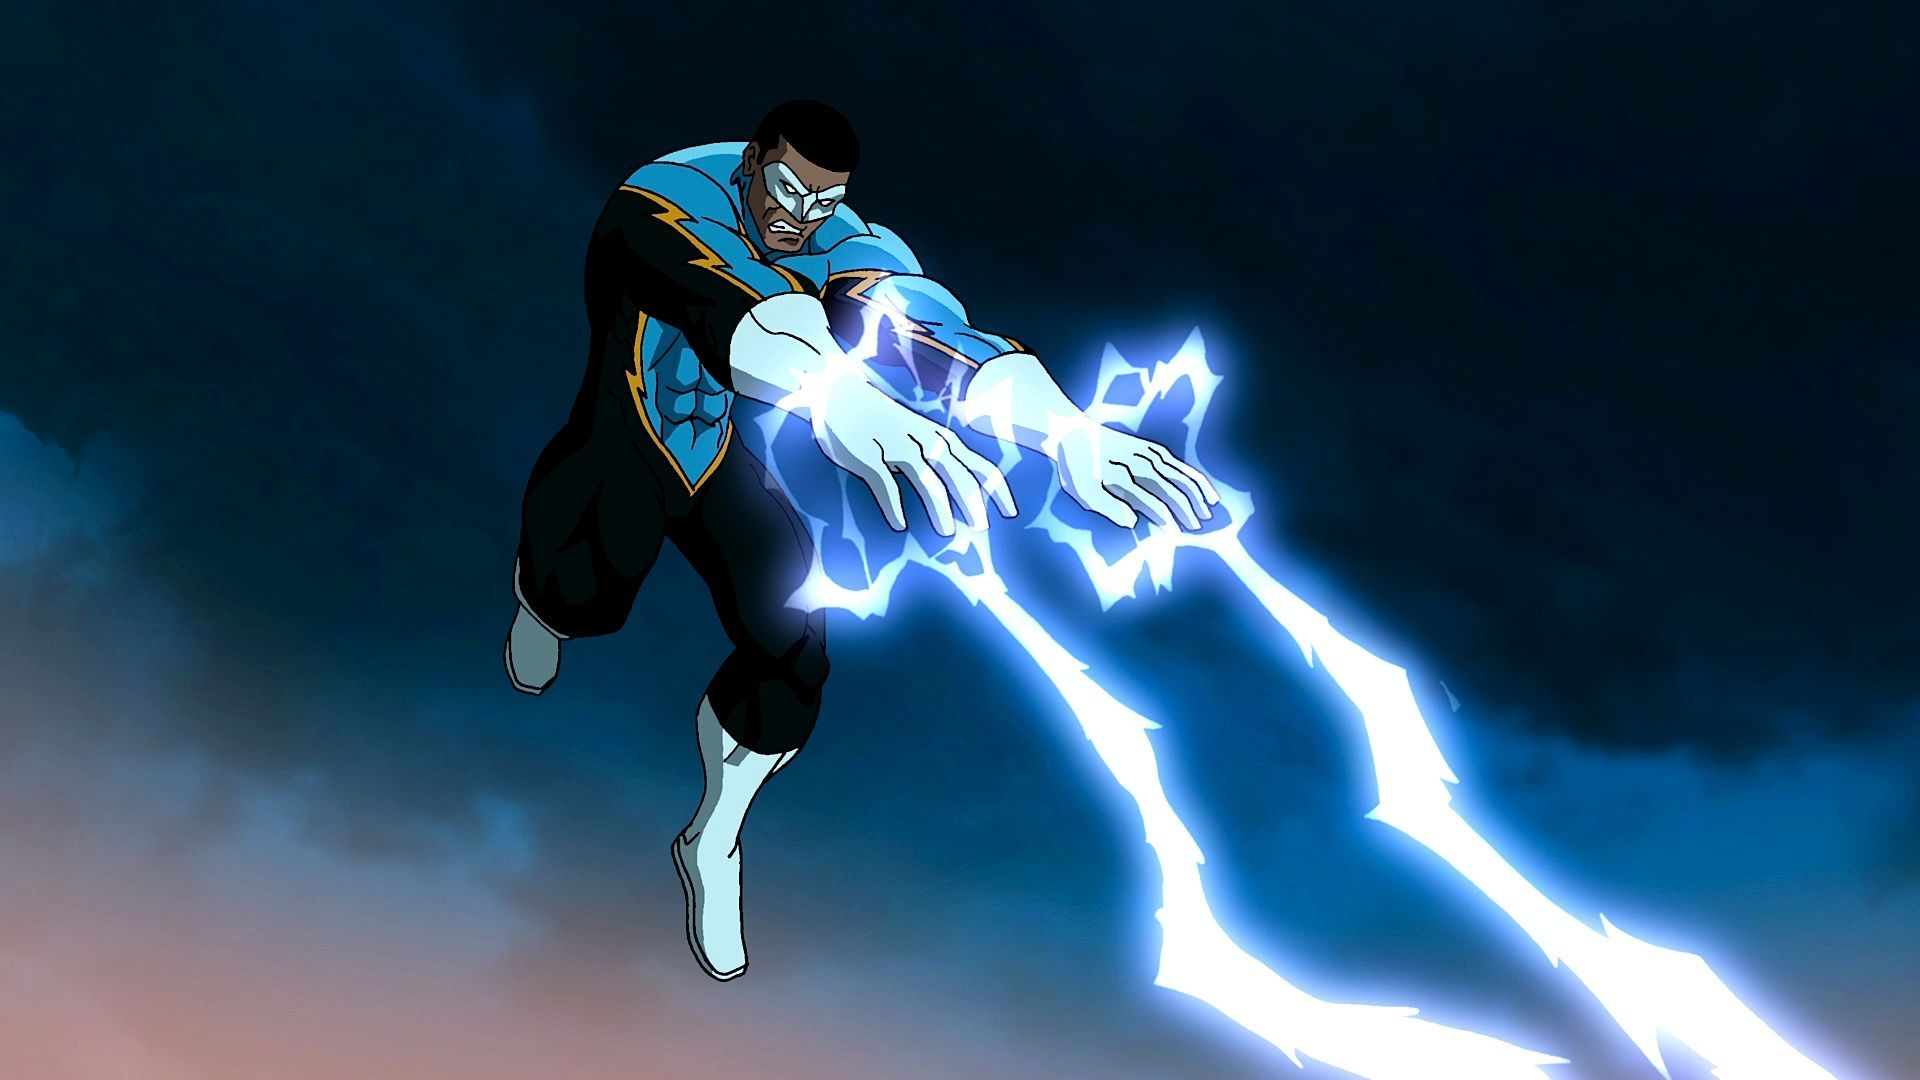 Black Lightning Computer Wallpapers, Desktop Backgrounds